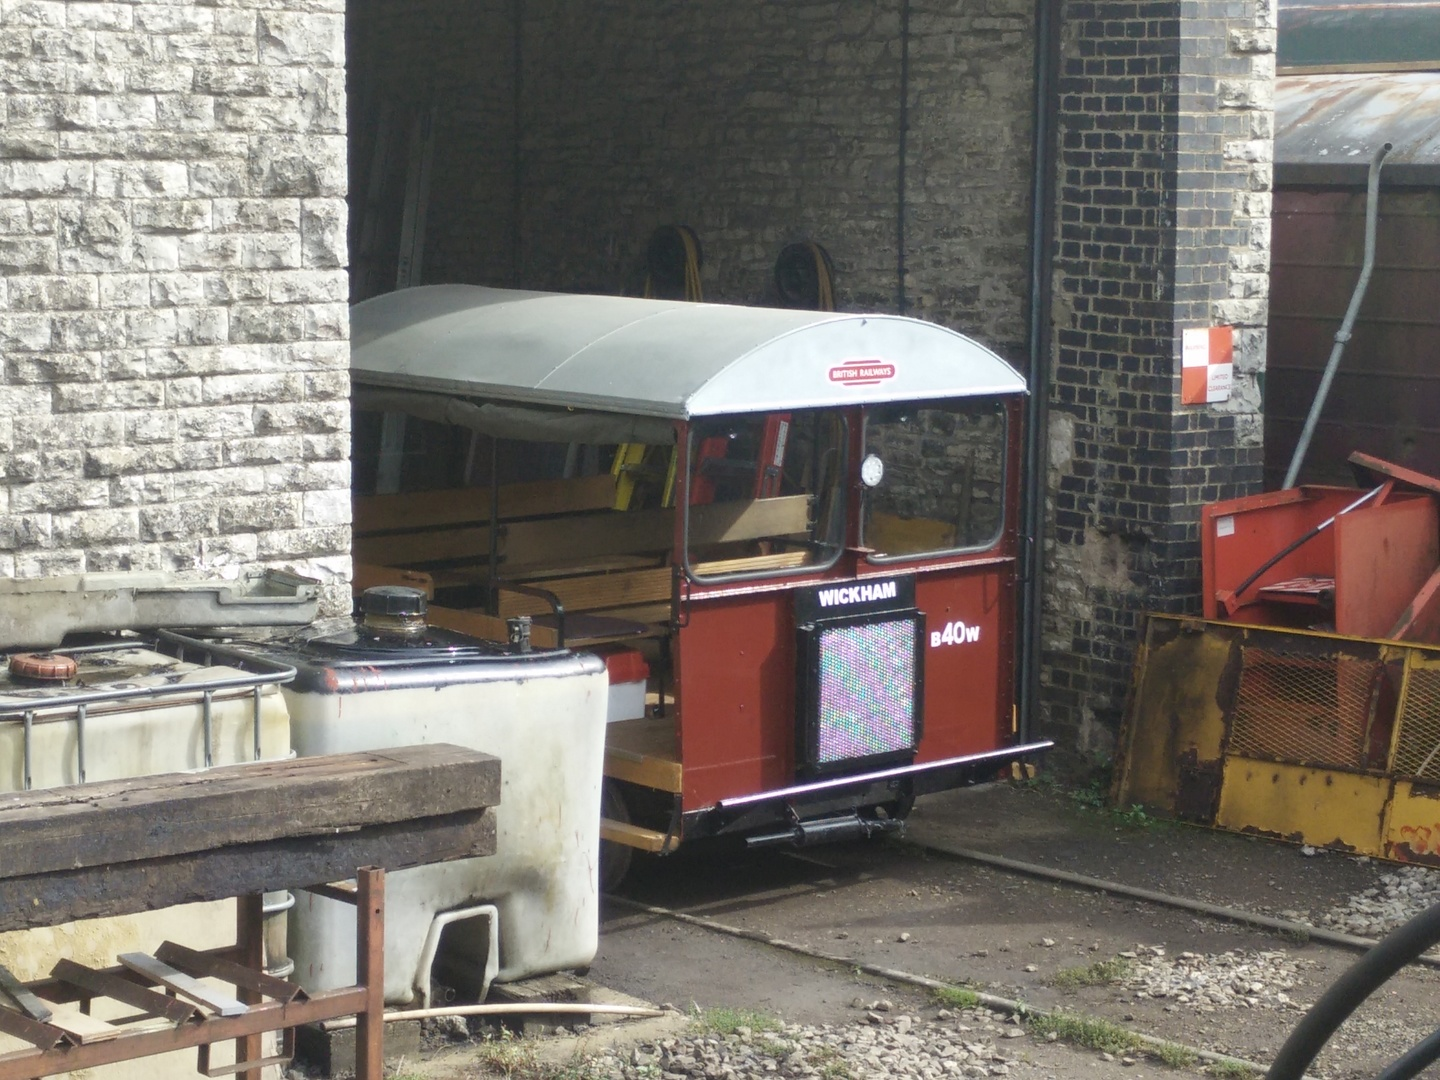 Restored rolling stock